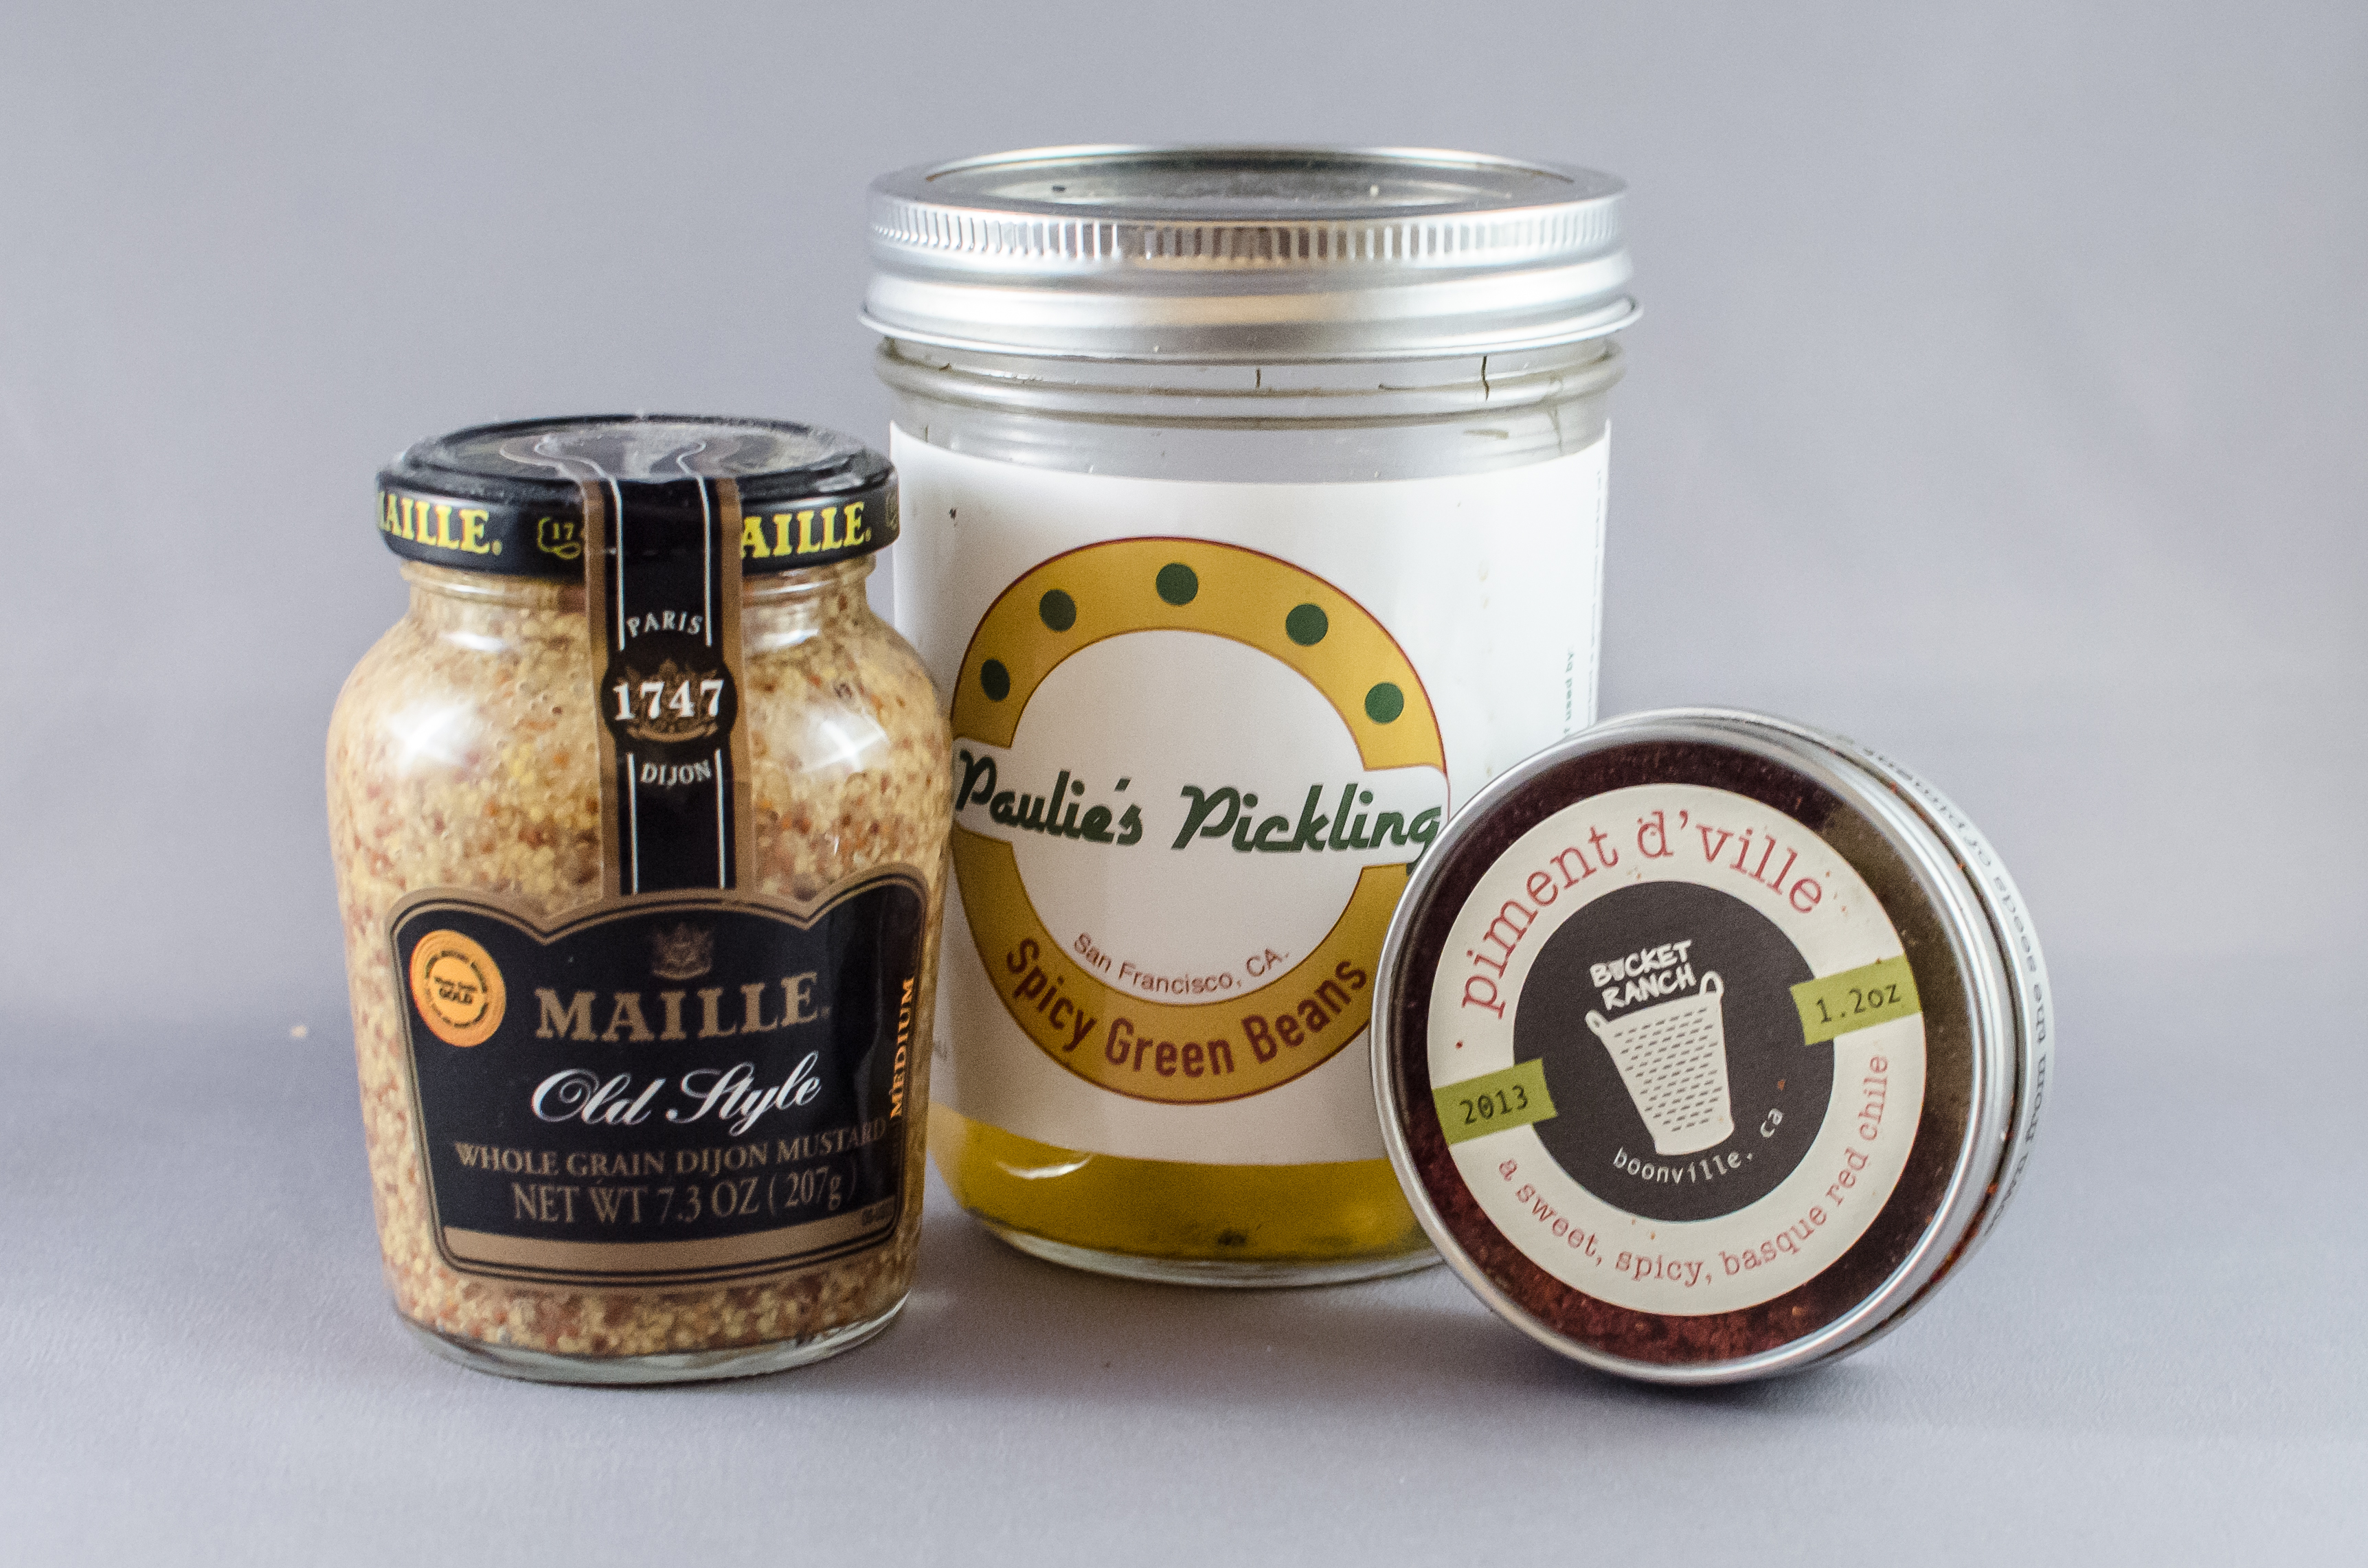 Maille_mustard_paulies_pickling_piment_dville